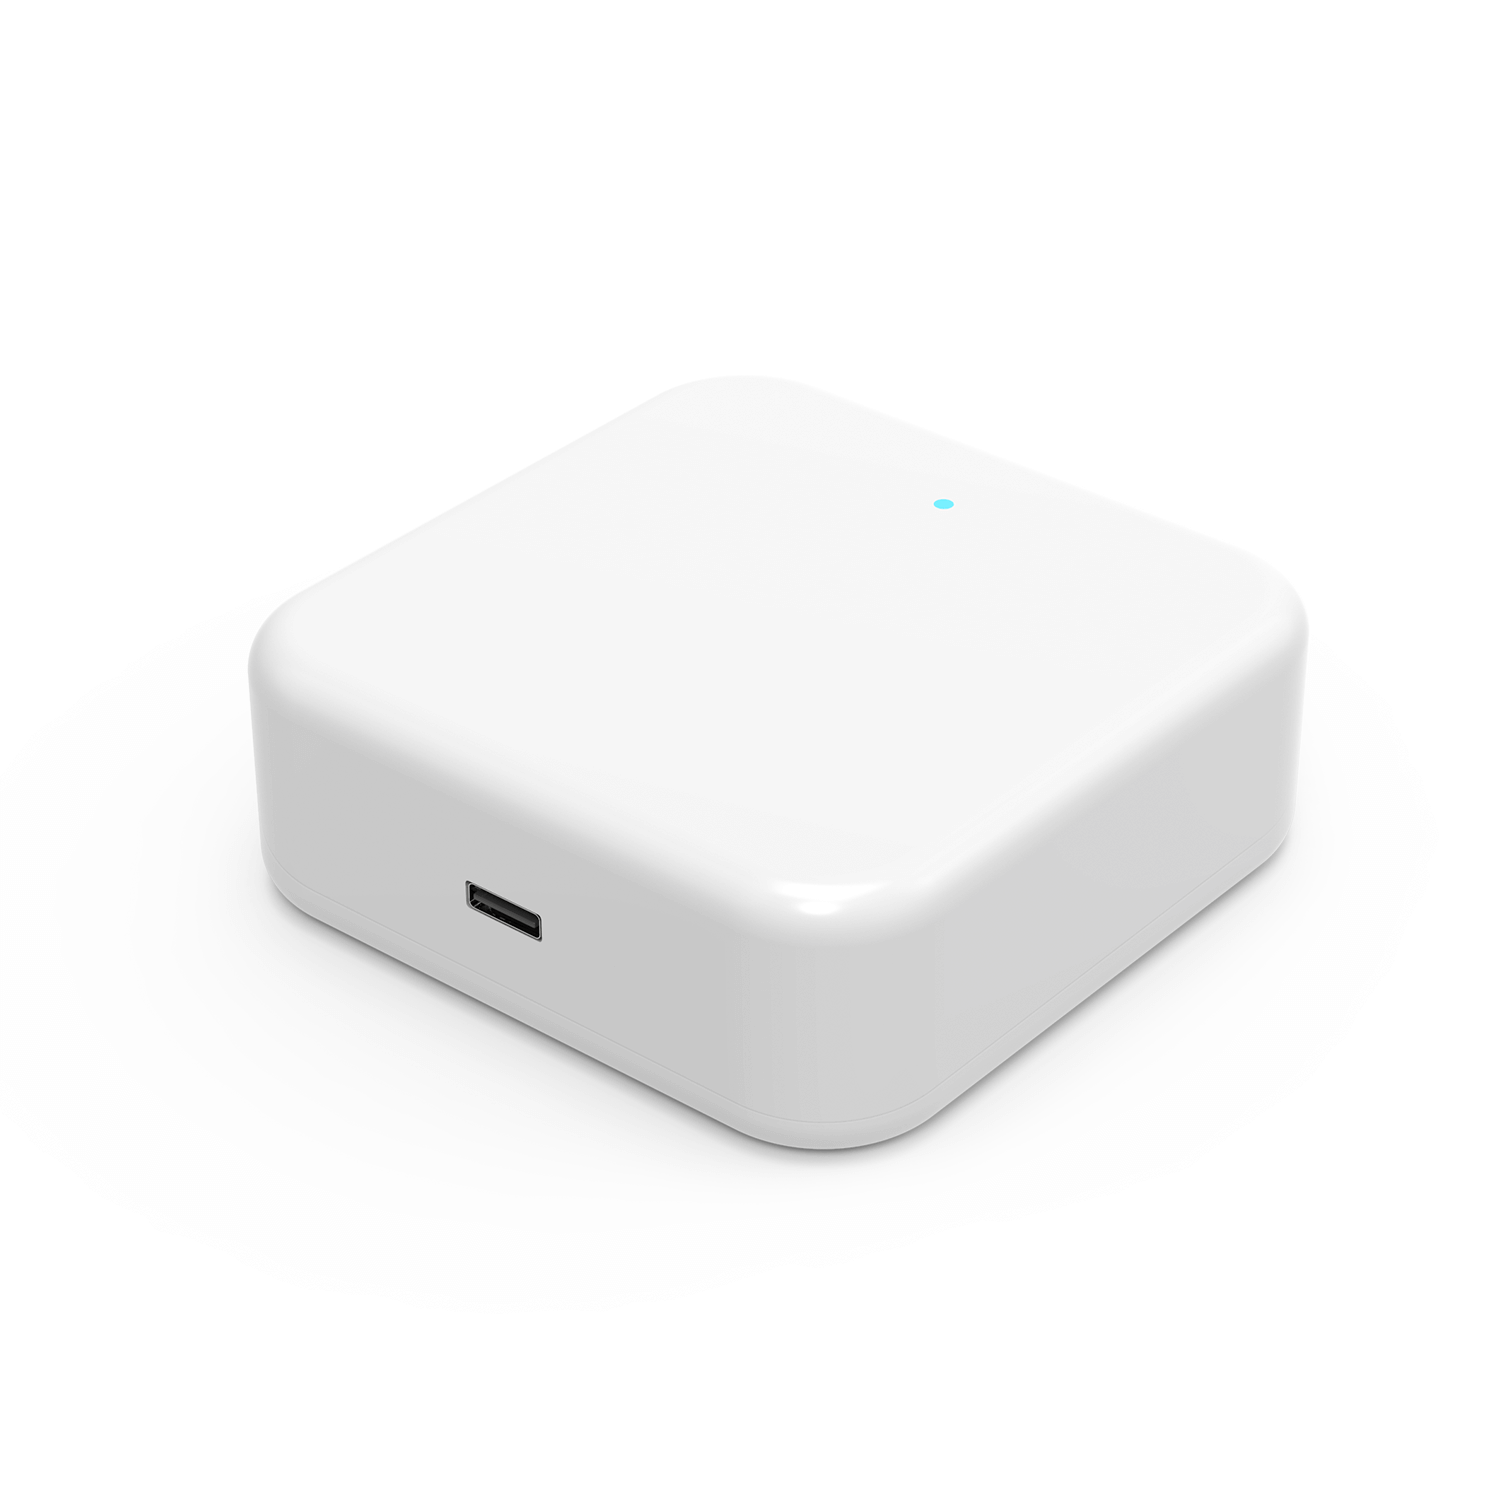 Dato Home Smart Hub Gateway, connect your datohome devices through the gateway, unlock from afar and pair with amazon alexa echo and google home